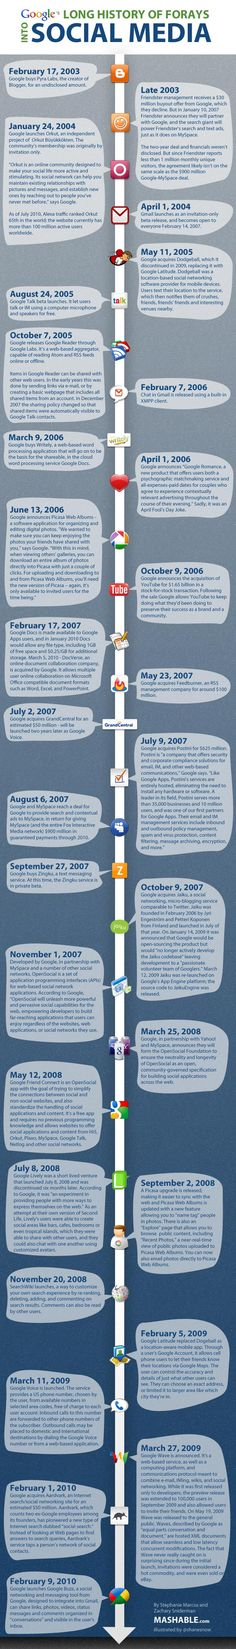 Google - Long History of Forays into Social Media Infographic